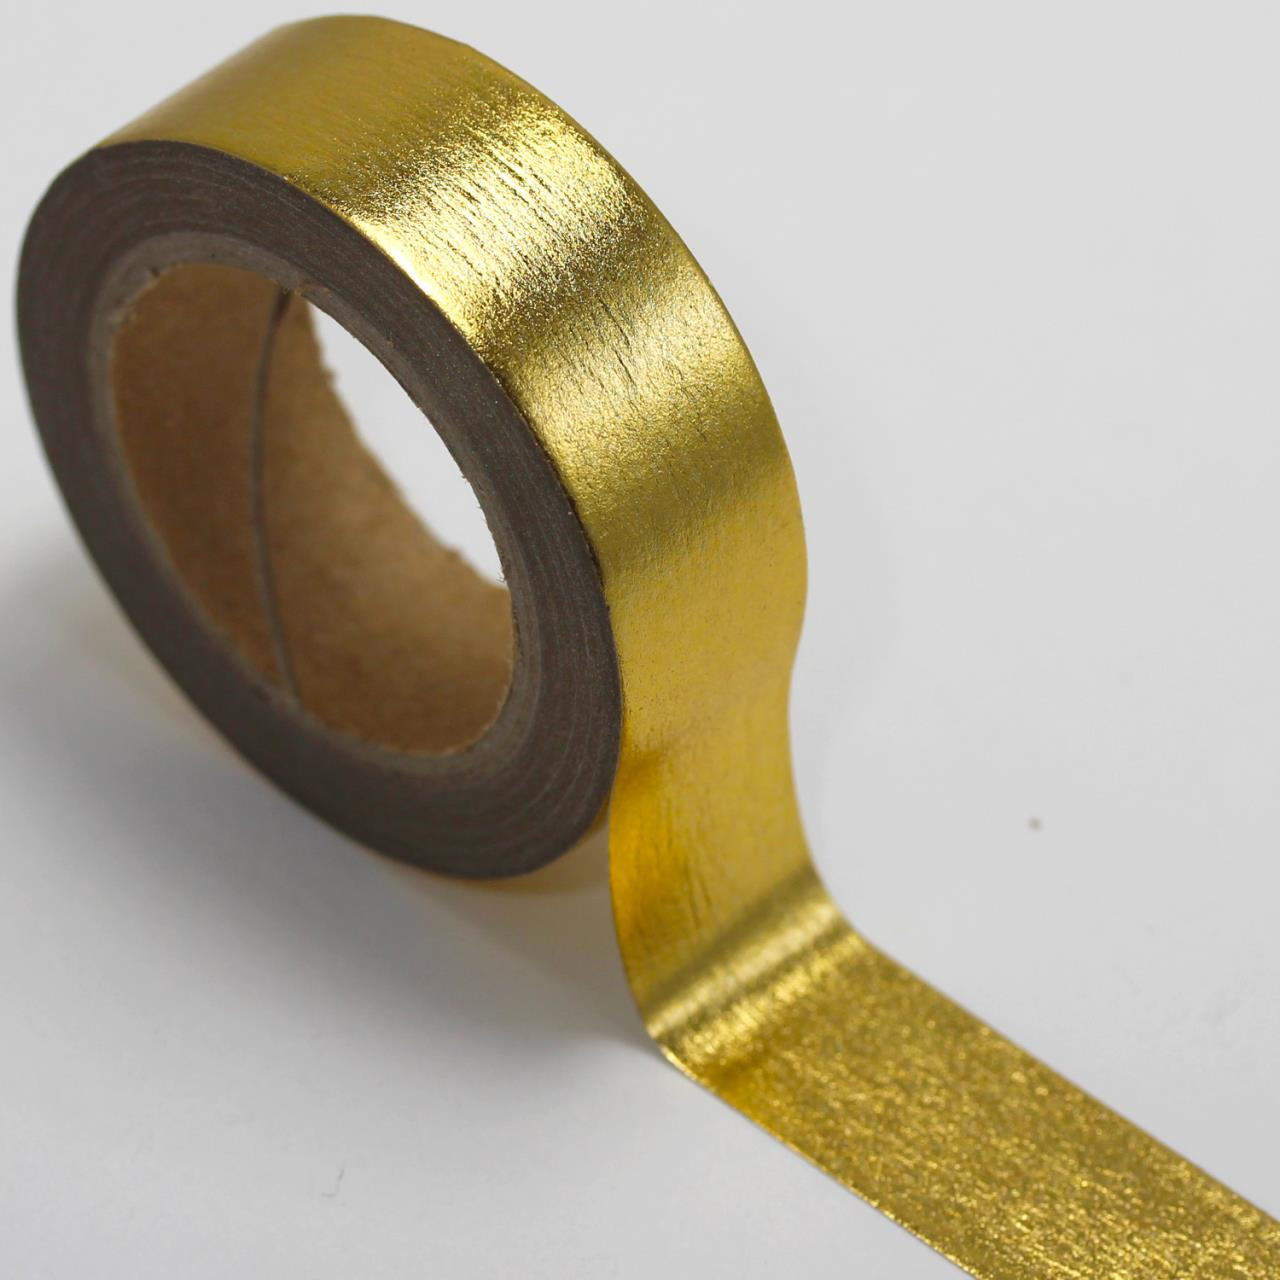 Washi Tape Gold Foil /& Black Stripes Metallic 15mm x 10m